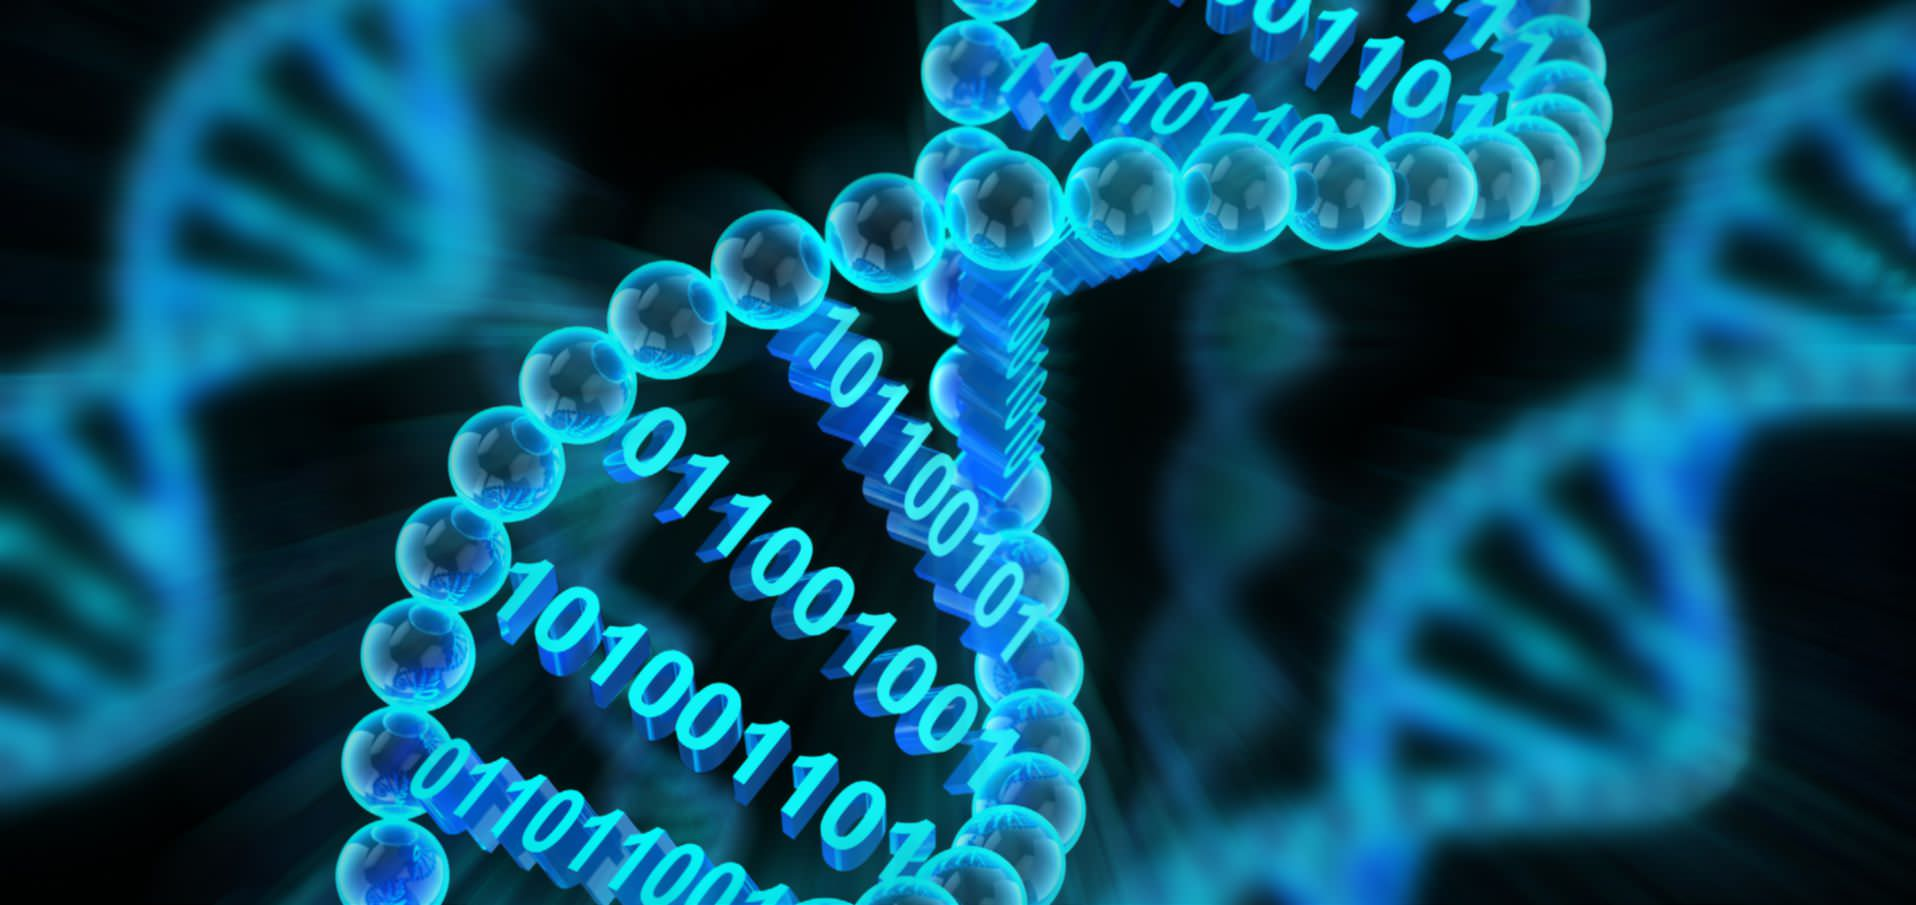 using dna in science and technology essay Introduction this activity dna technology traditional methods dna technologies have advanced the science of taxonomy the sequence of bases in certain.